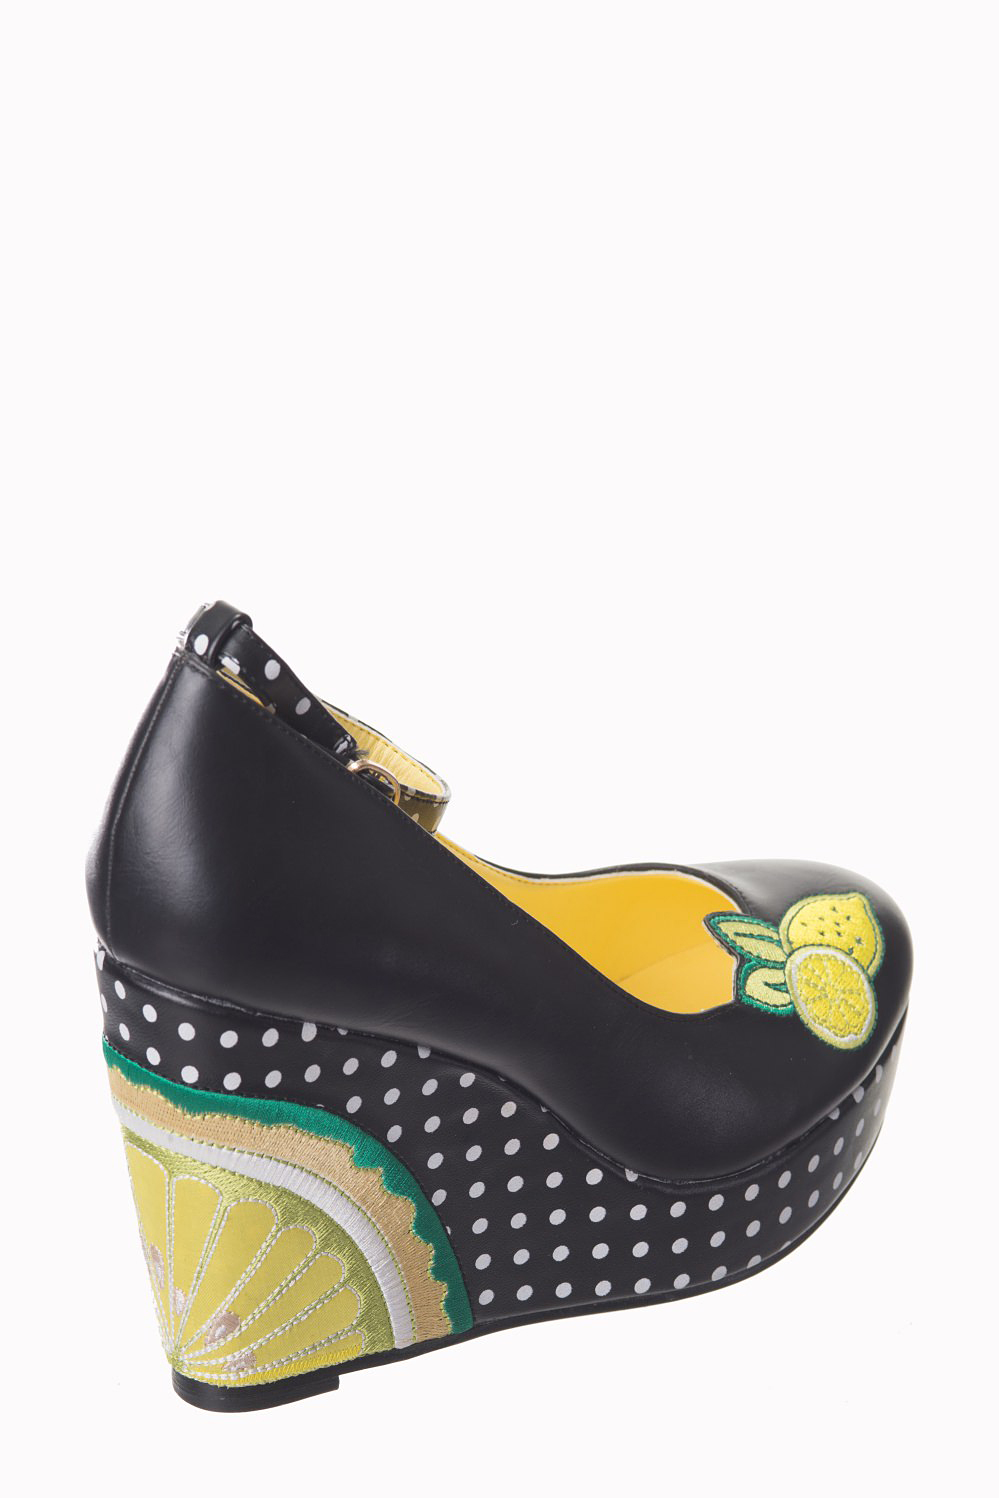 Dancing Days Kora 70s Platform Lime Shoes